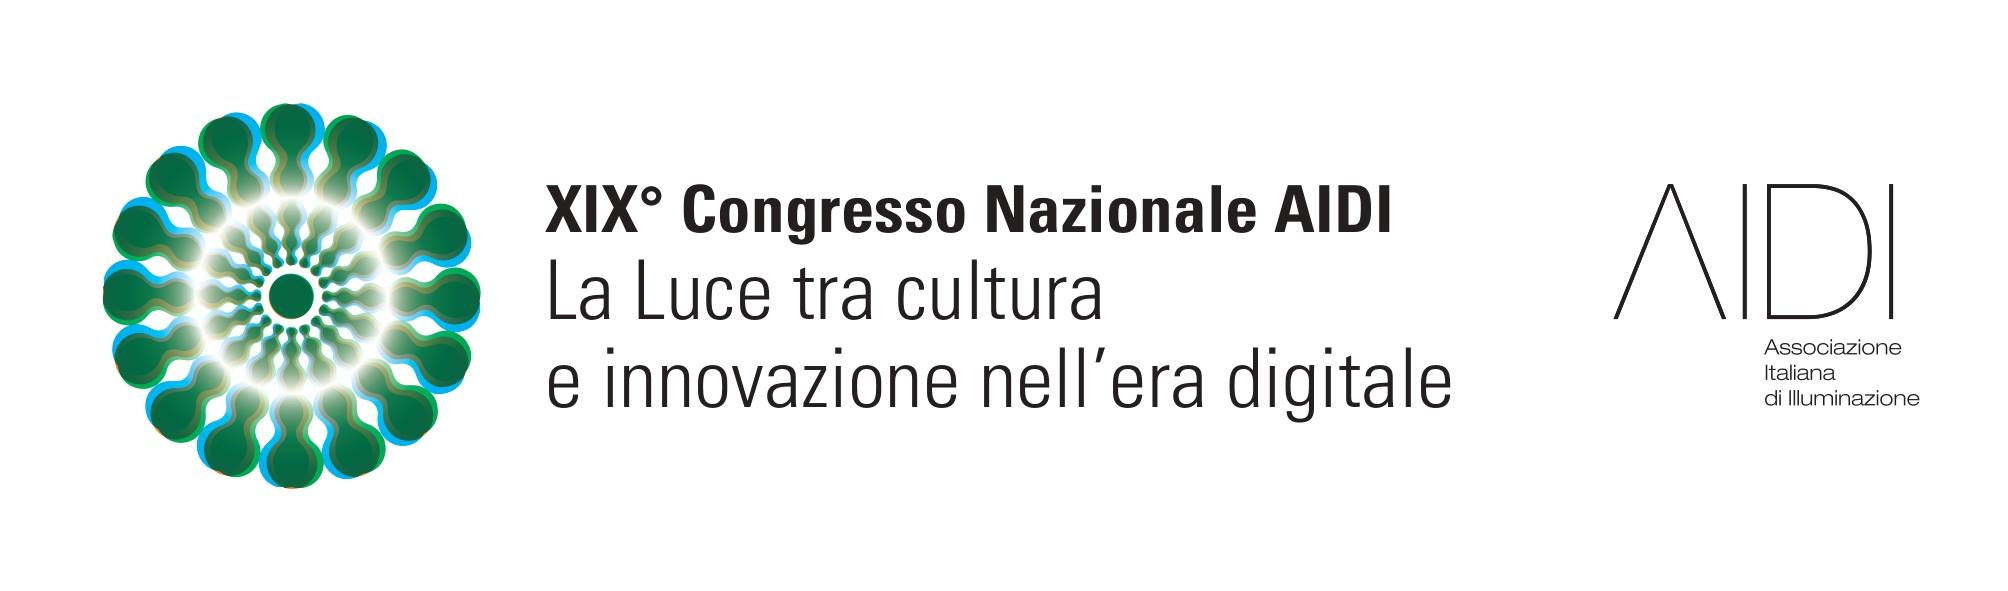 XIX Congresso Nazionale AIDI – Call for papers